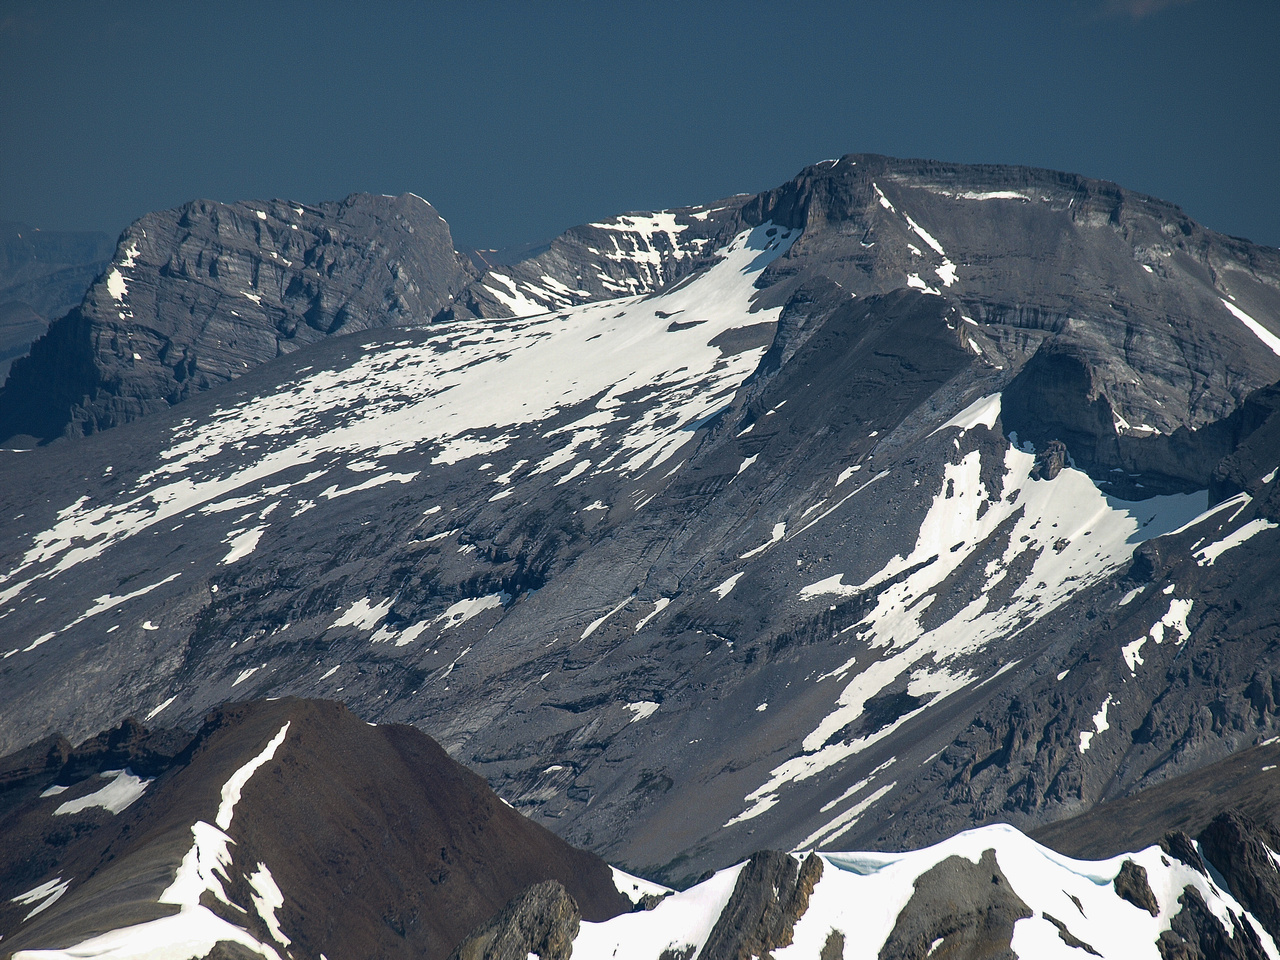 Mount Lougheed I (L) and Sparrowhawk (R)